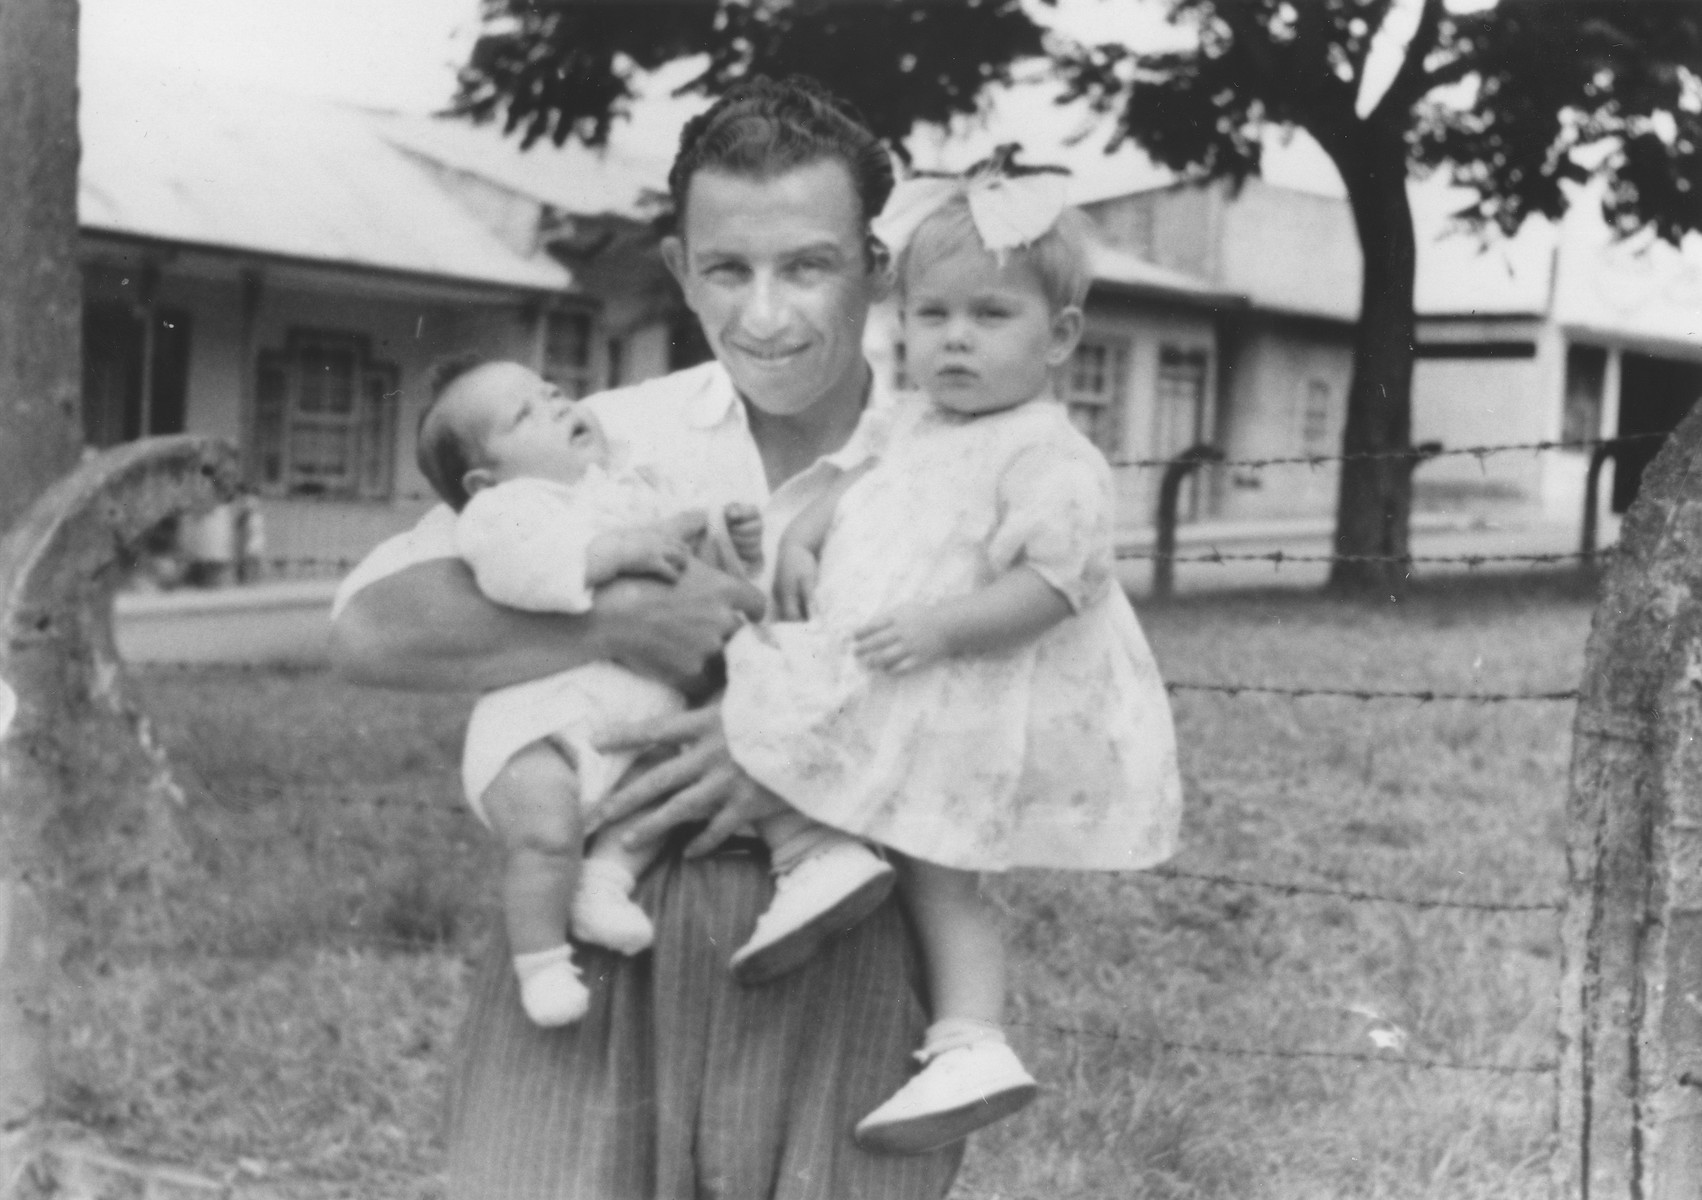 Portrait of Lezer Kawer holding his two children, Dina and Noah, outside their home in Costa Rica.